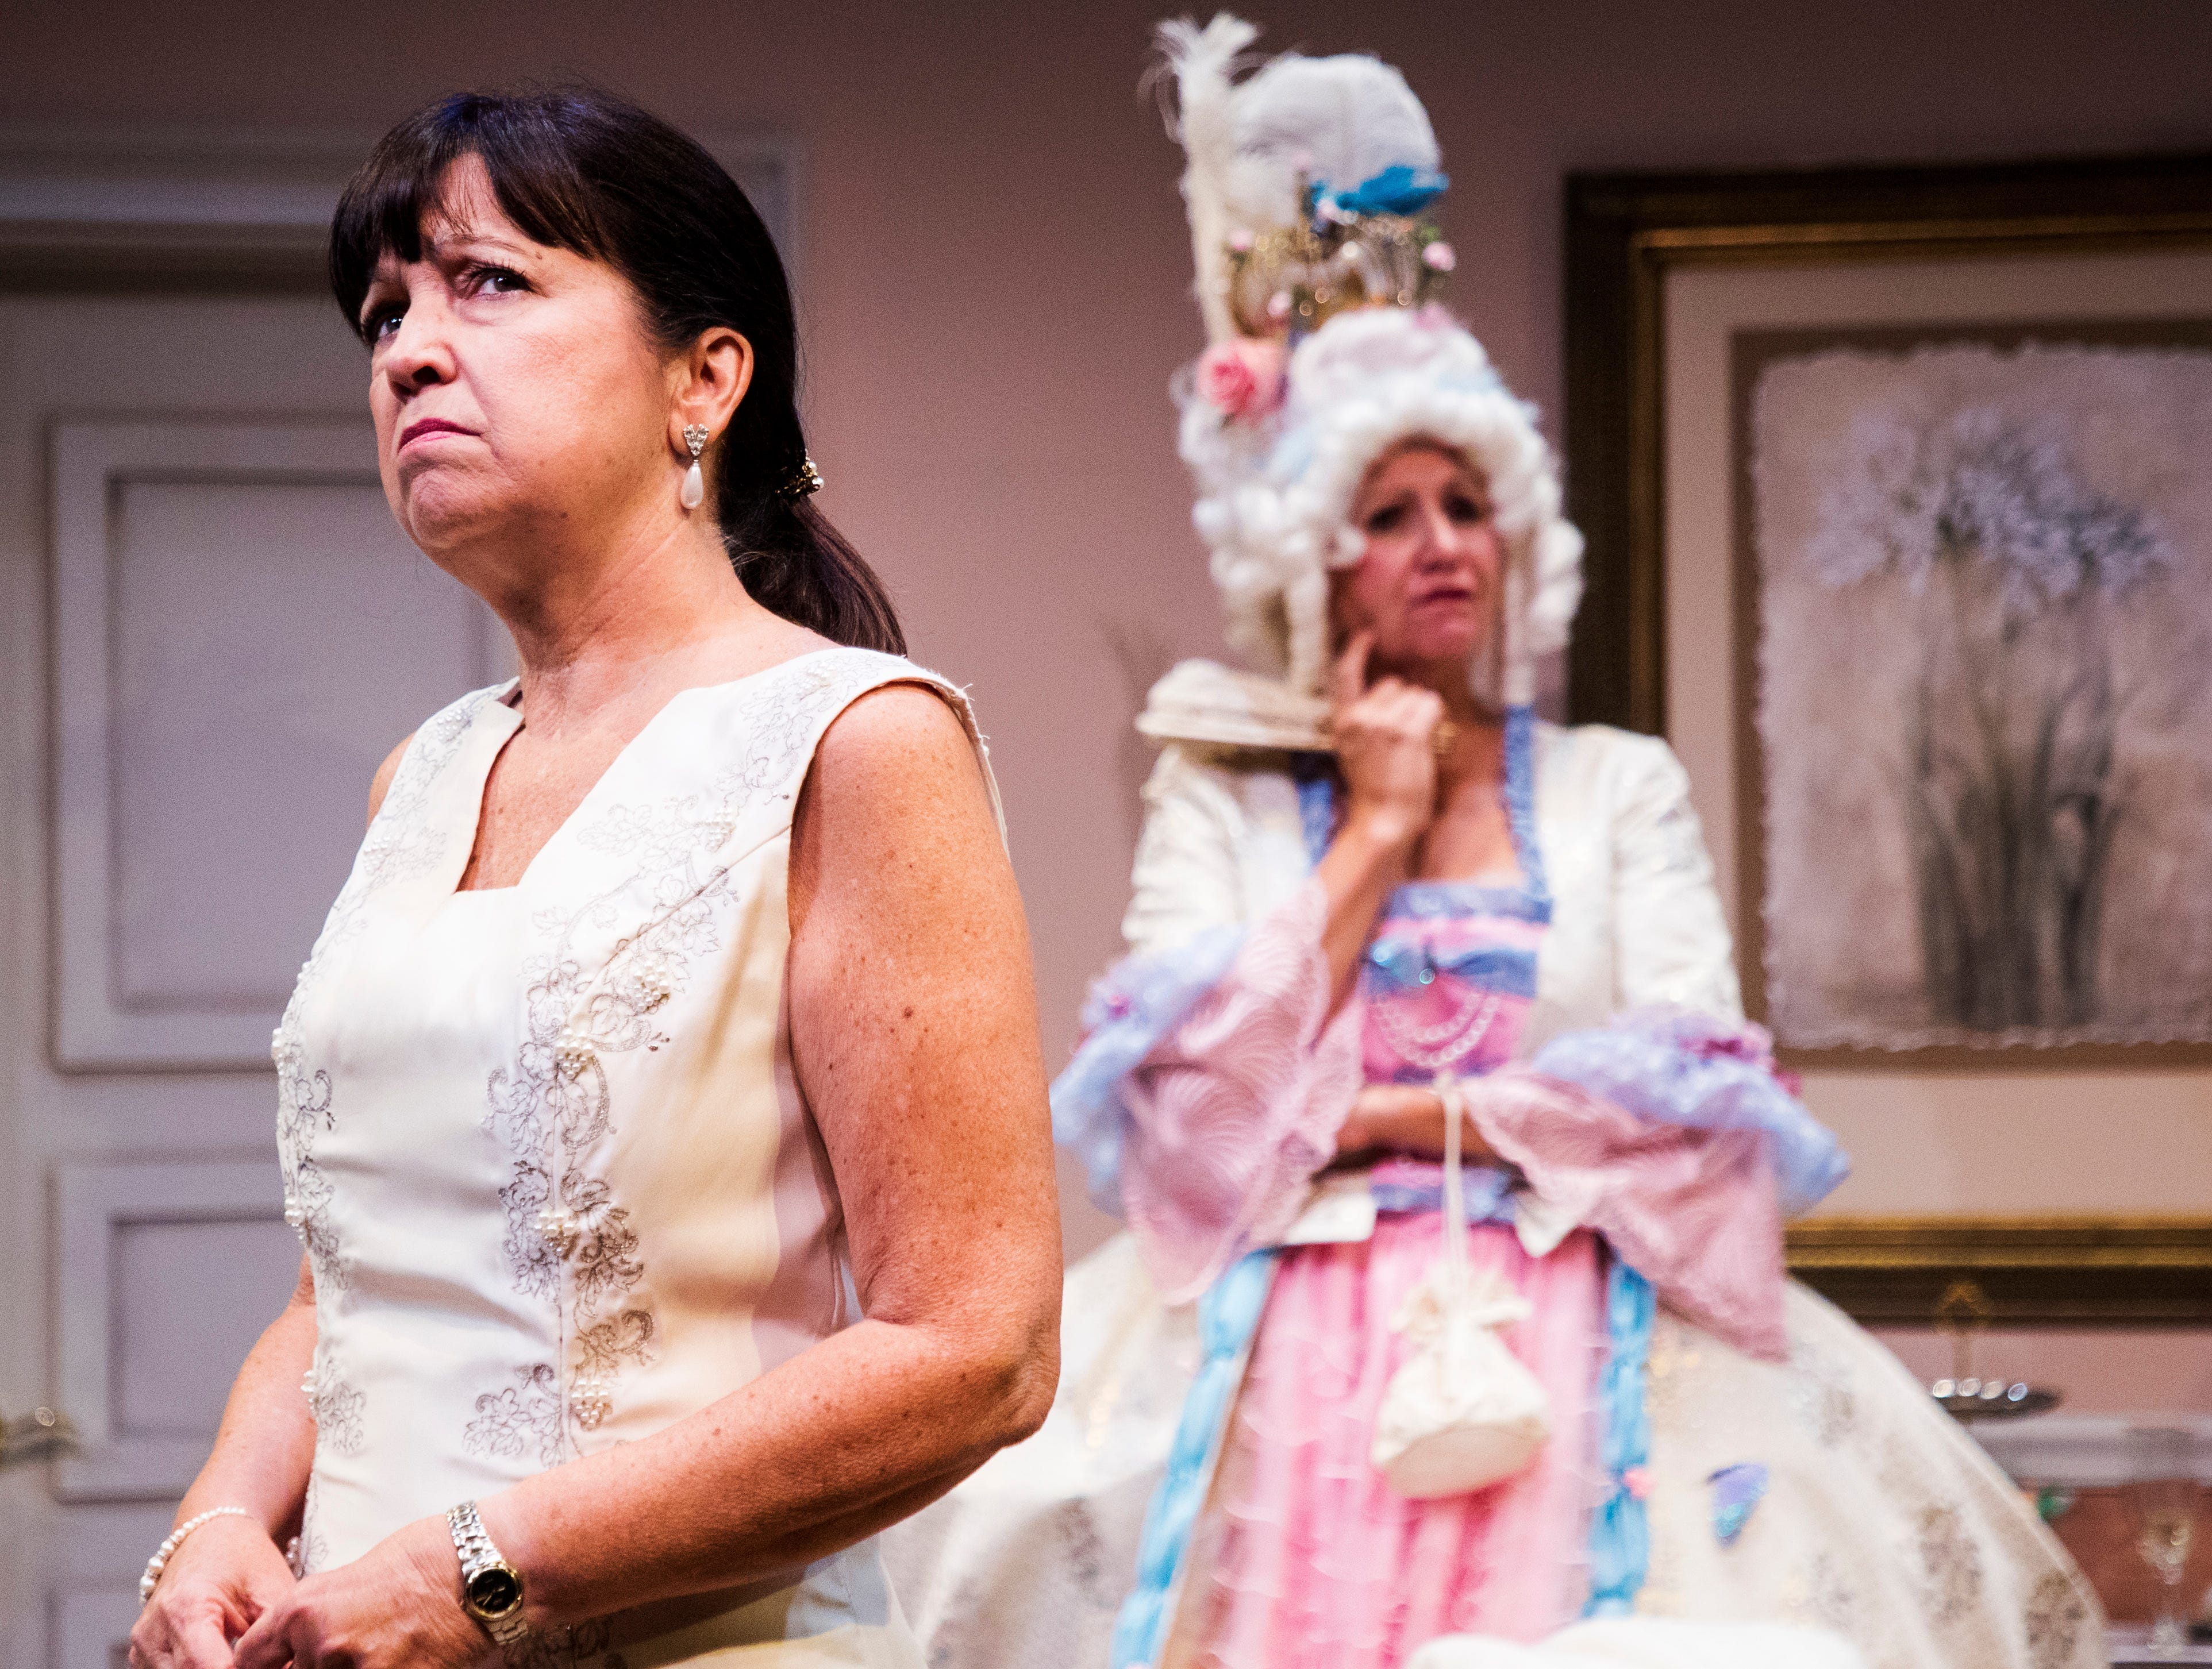 Jo Atkinson playing Deedra and Pamela Austin Playing Monette act out a scene during a dress rehearsel in Always a Bridesmaid. It is playing at the Tobye Theater at Sugden Community Theater on 5th Ave. in Naples from March 27-April 20.